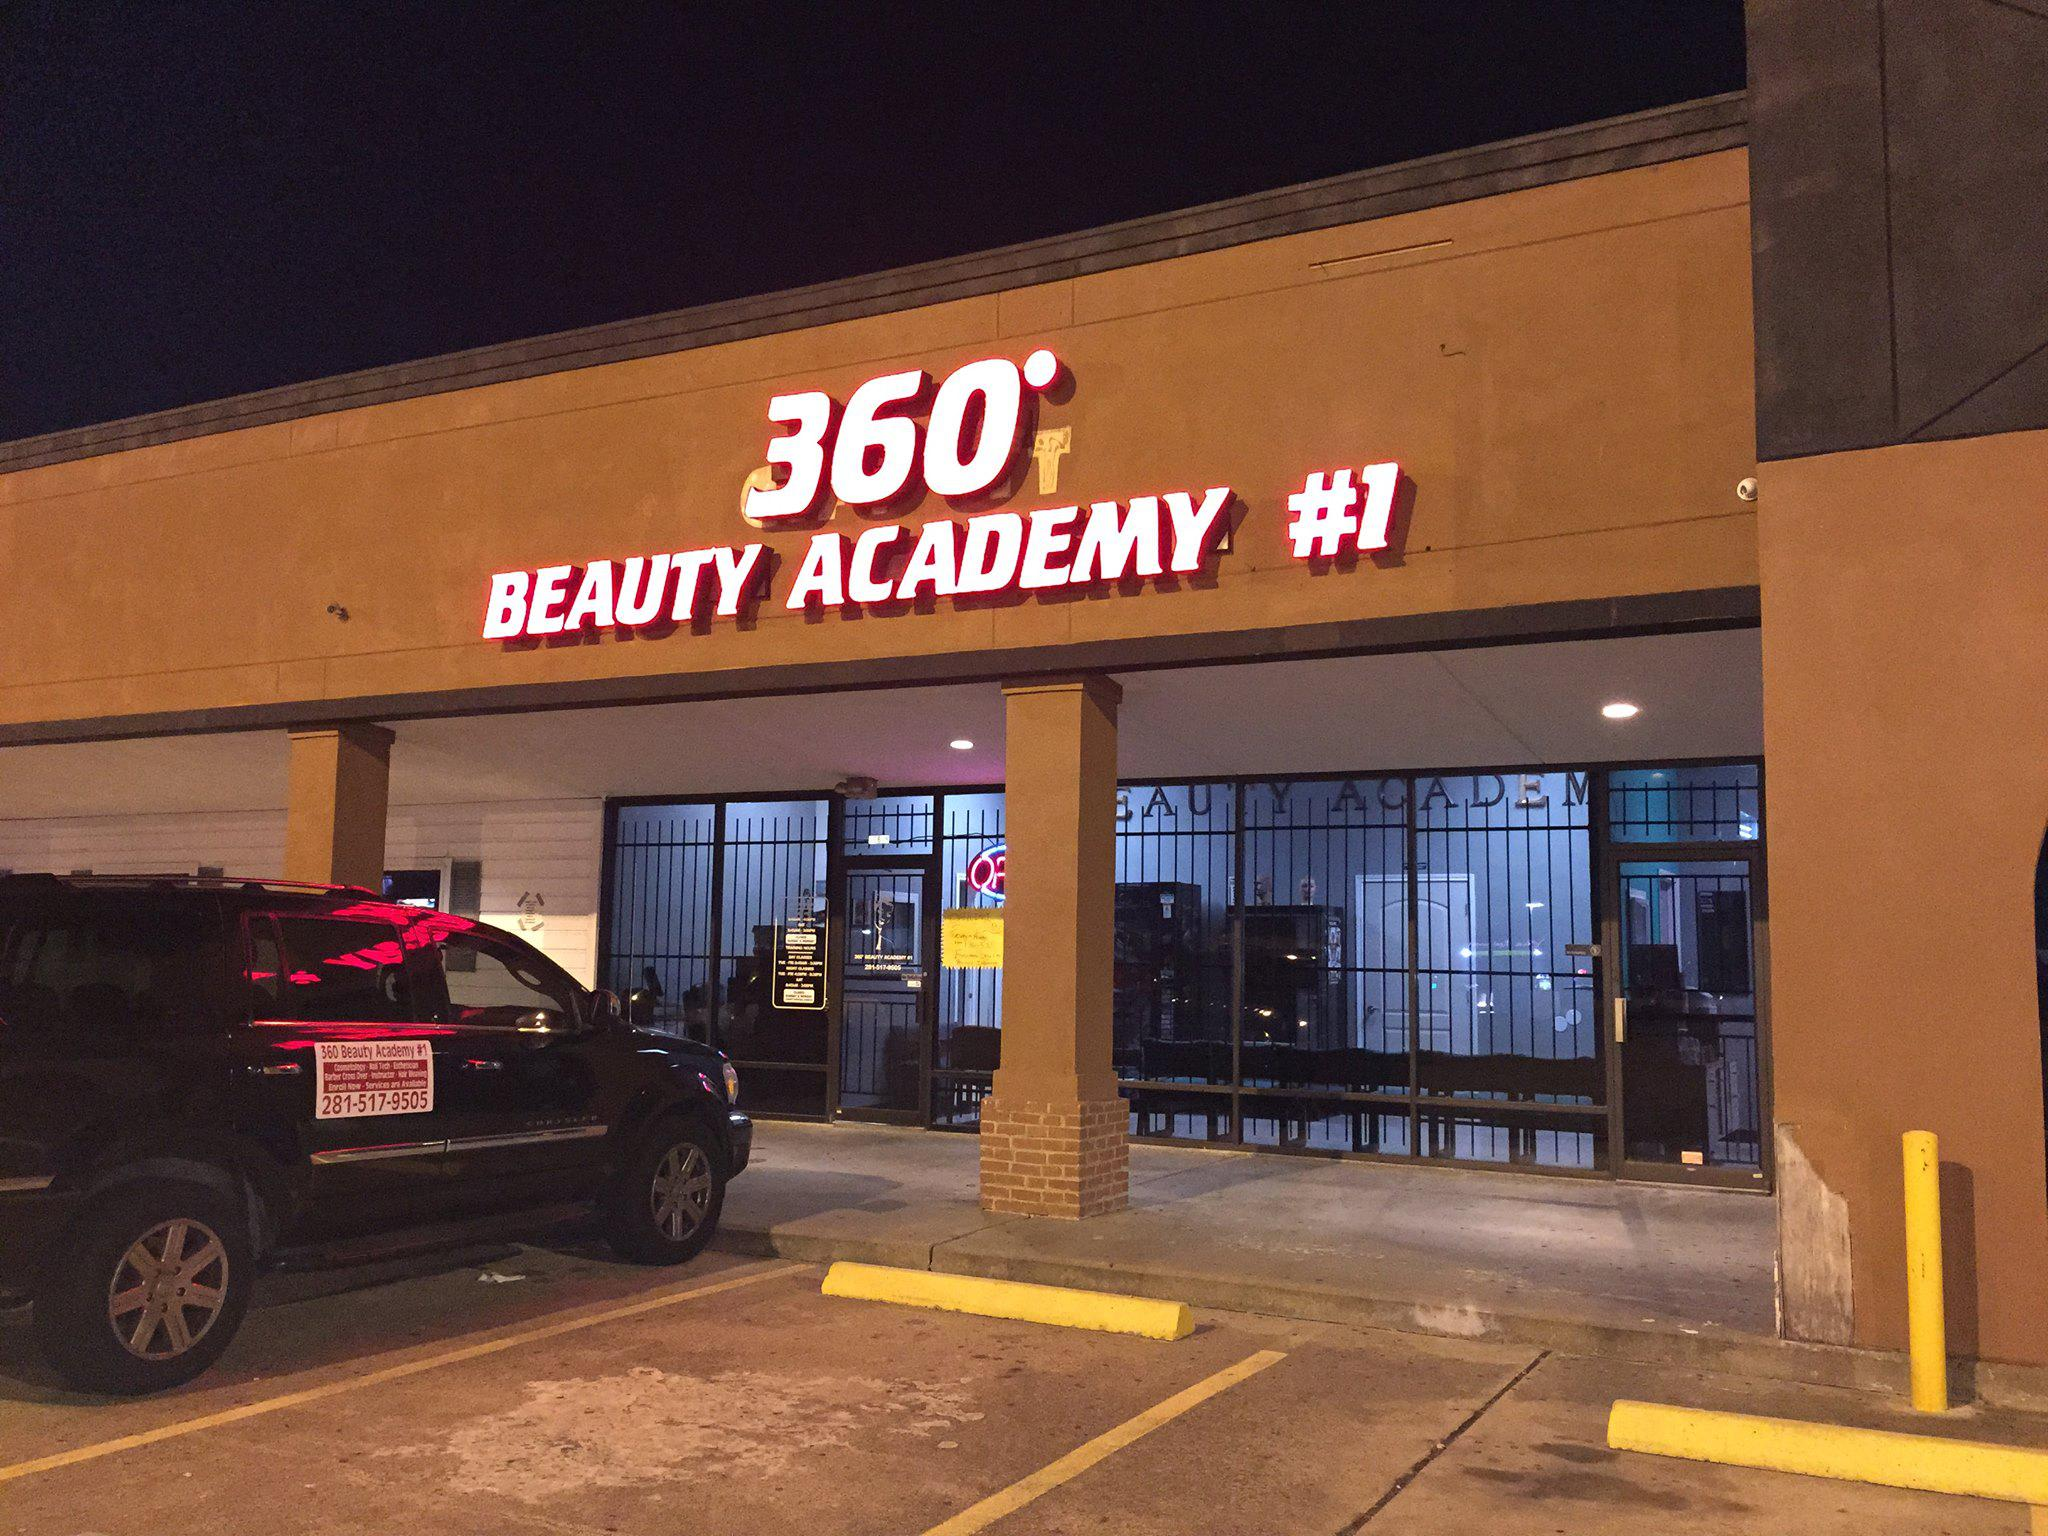 360 Degrees Beauty Academy #1 image 0